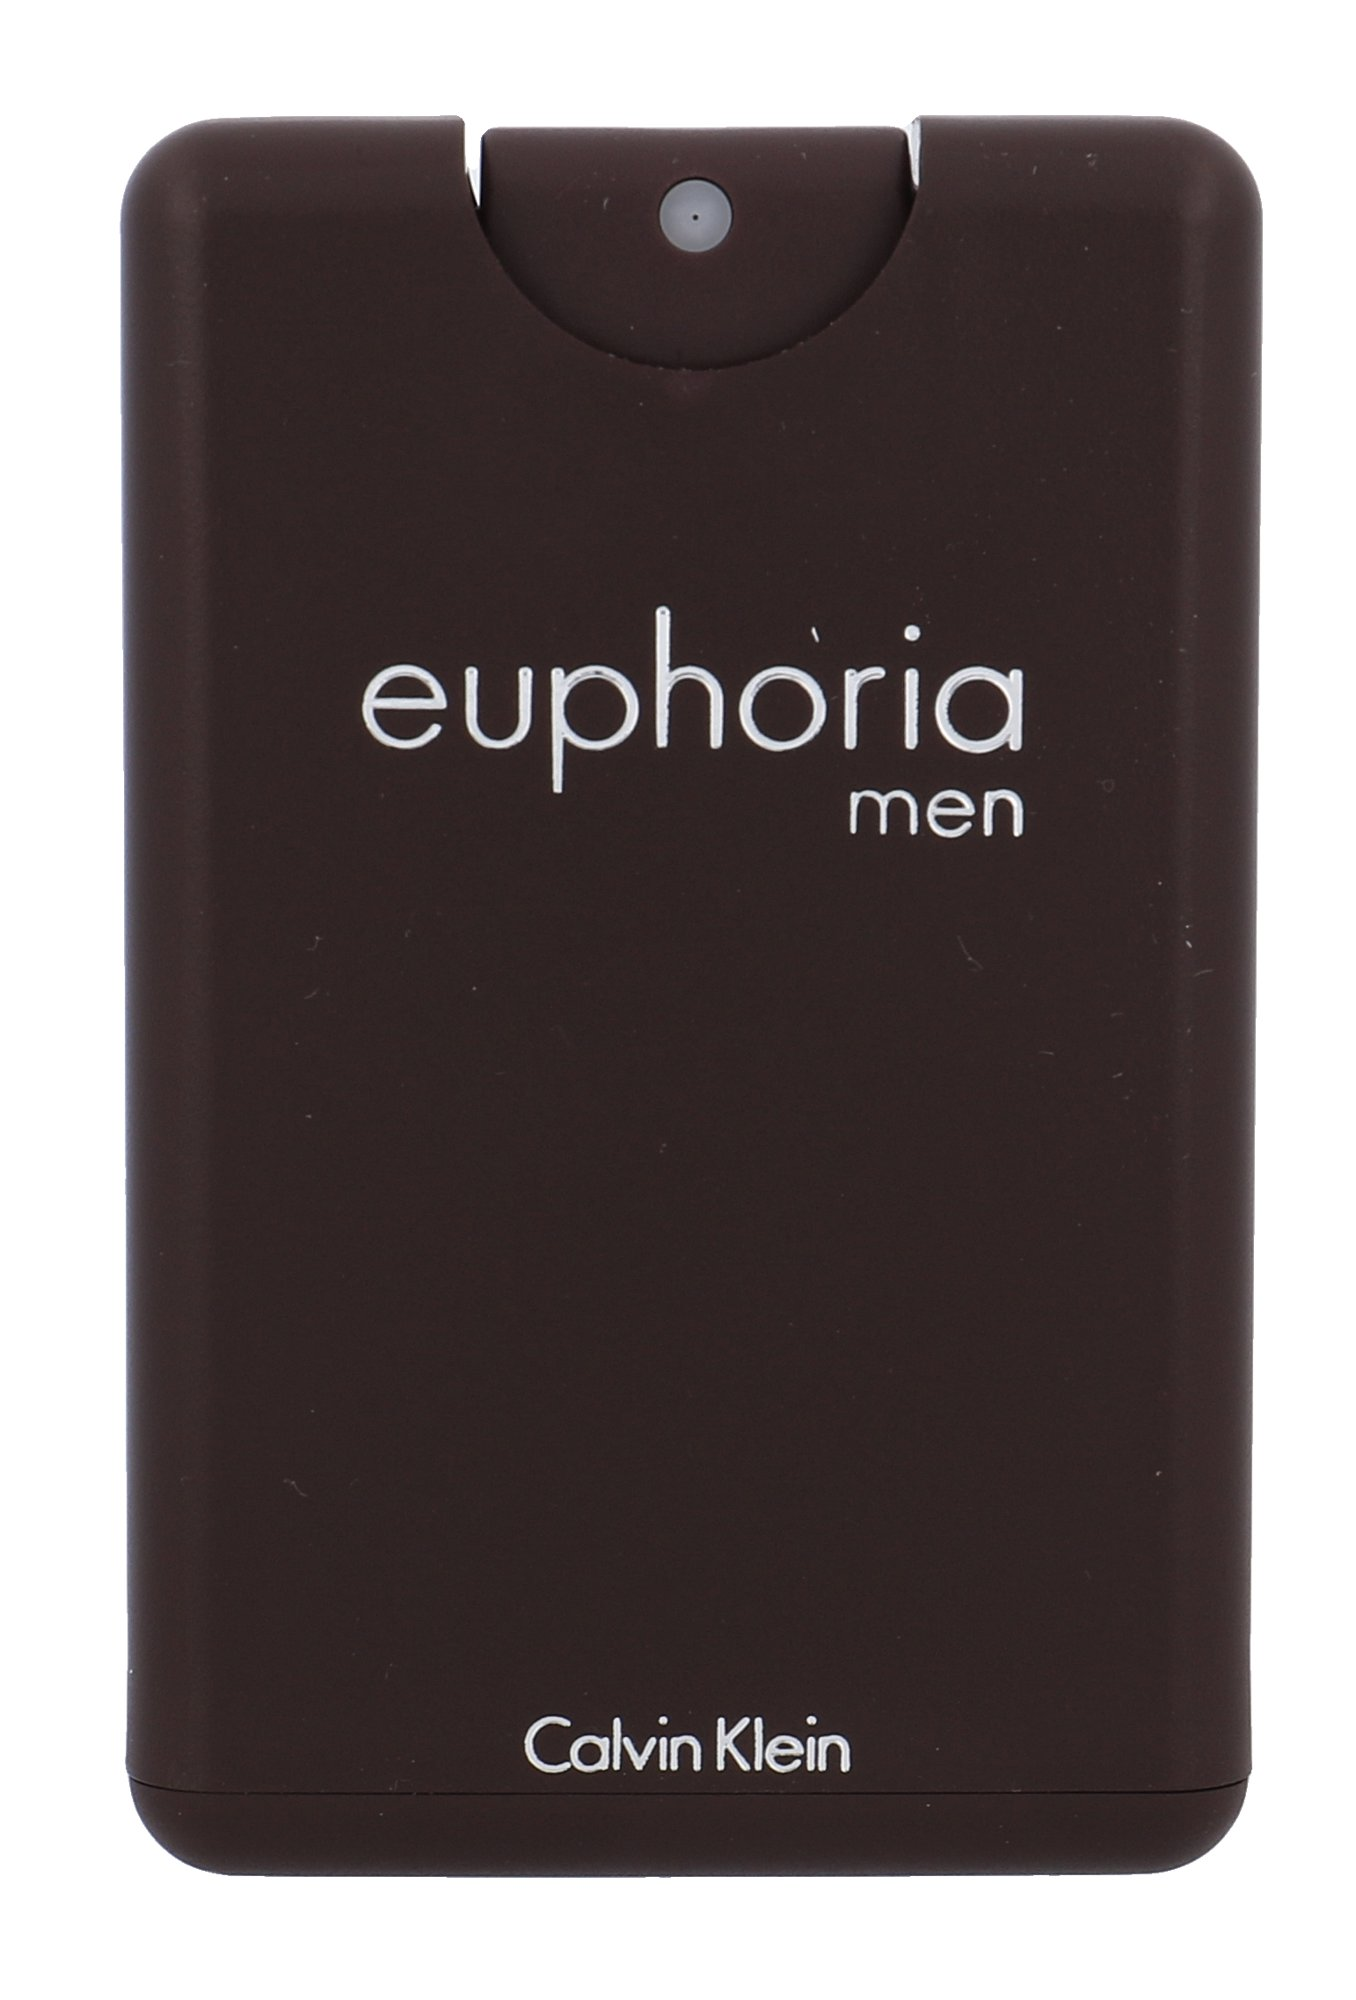 Calvin Klein Euphoria Men, edt 20ml